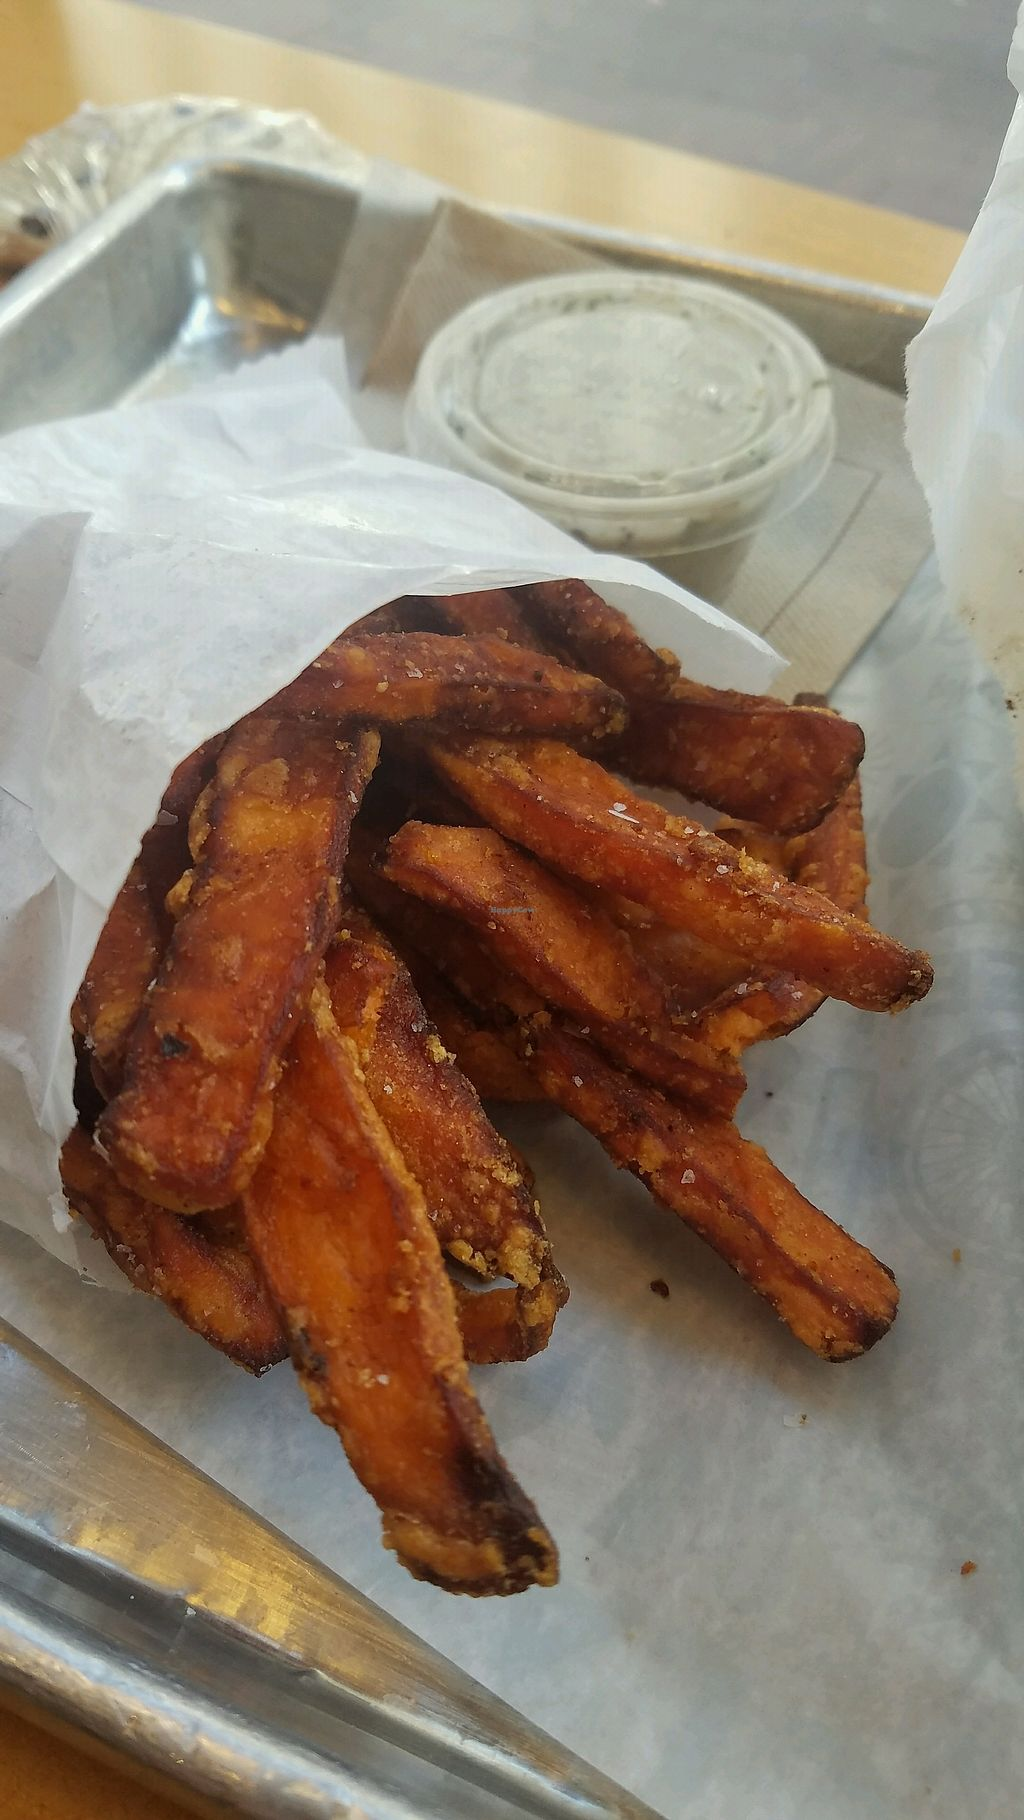 """Photo of HipCityVeg  by <a href=""""/members/profile/Sir.RyanJohnson"""">Sir.RyanJohnson</a> <br/>sweet potato fries  <br/> December 16, 2017  - <a href='/contact/abuse/image/74759/336188'>Report</a>"""